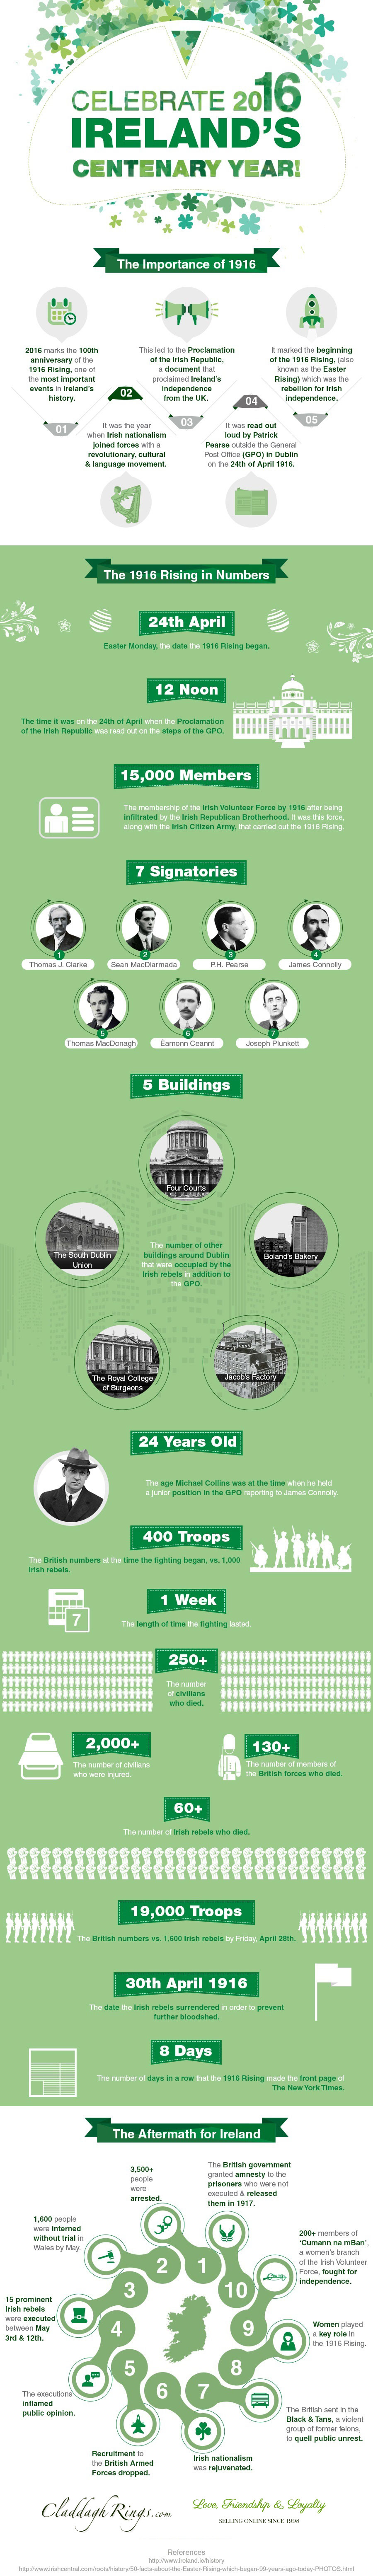 The Irish Rising took place at Easter 1916.